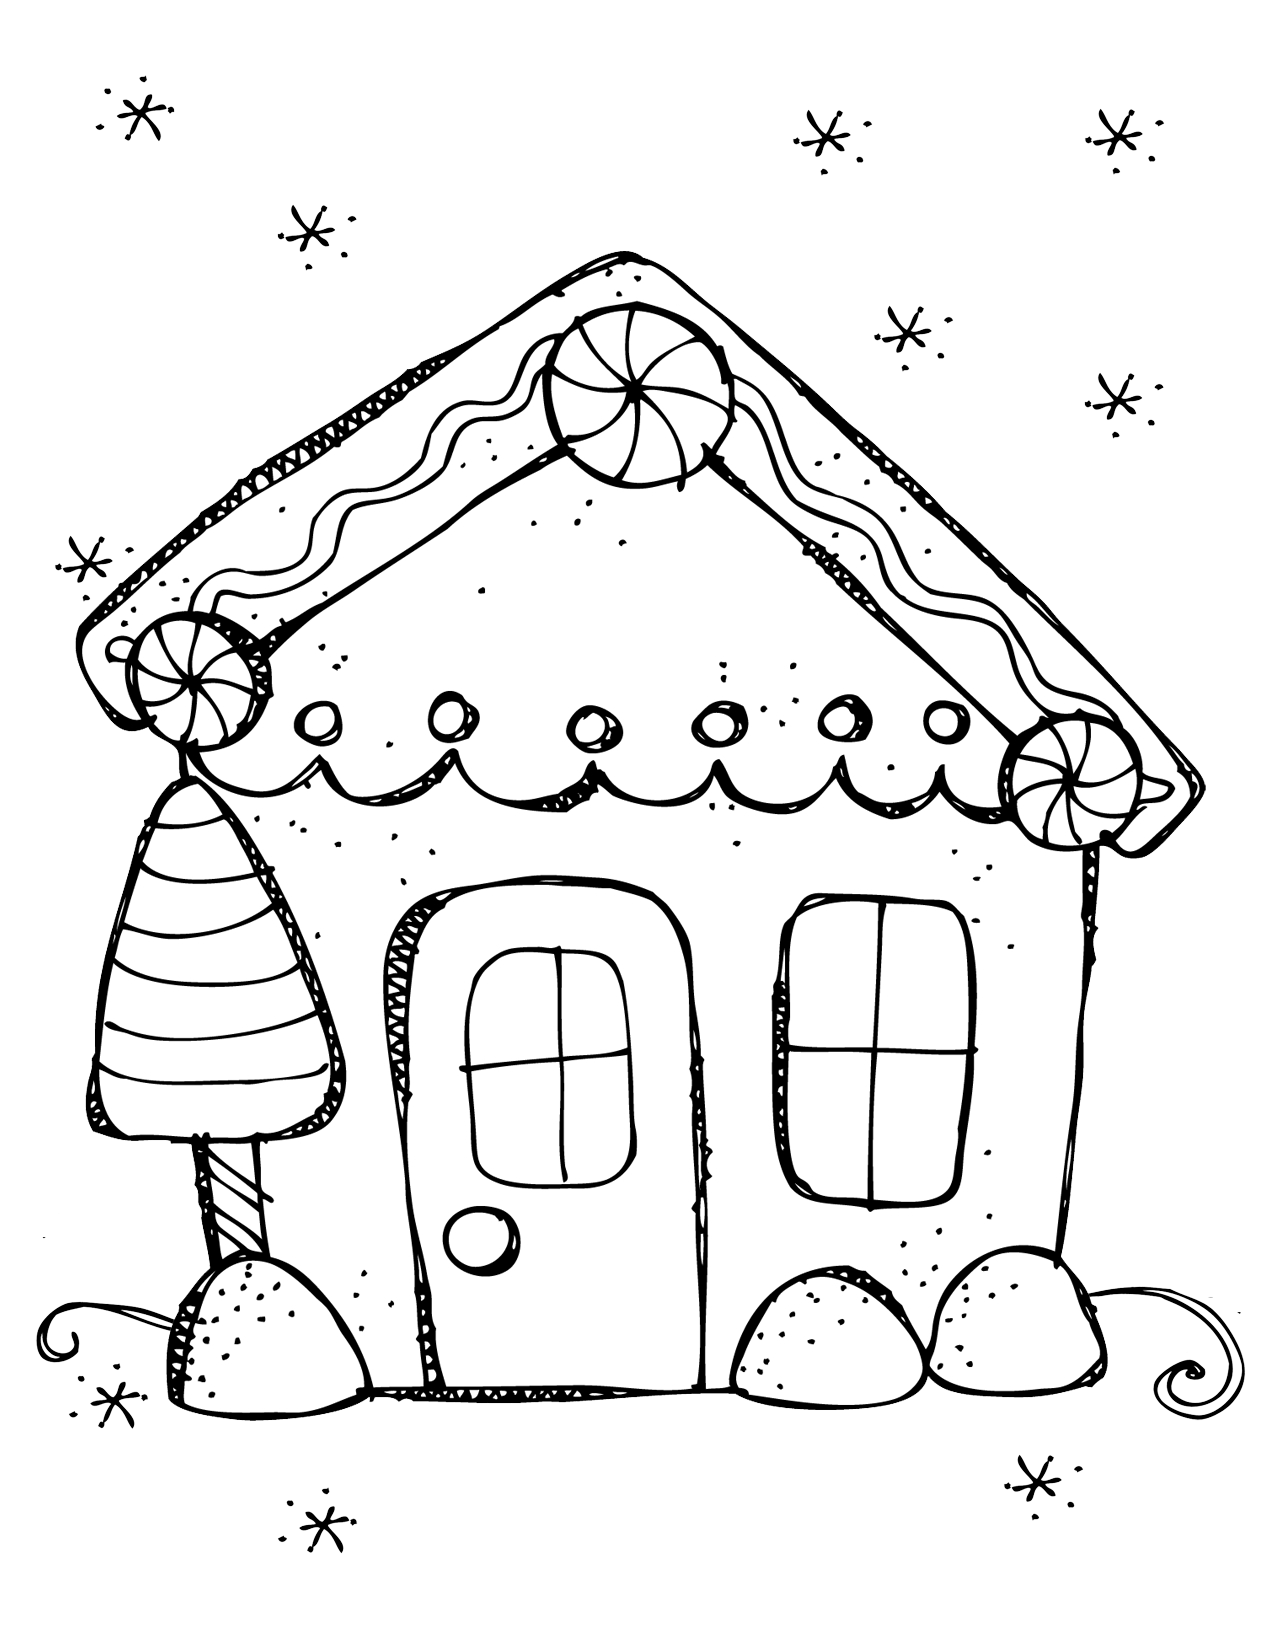 Startling Whoville Houses Coloring Snowflake